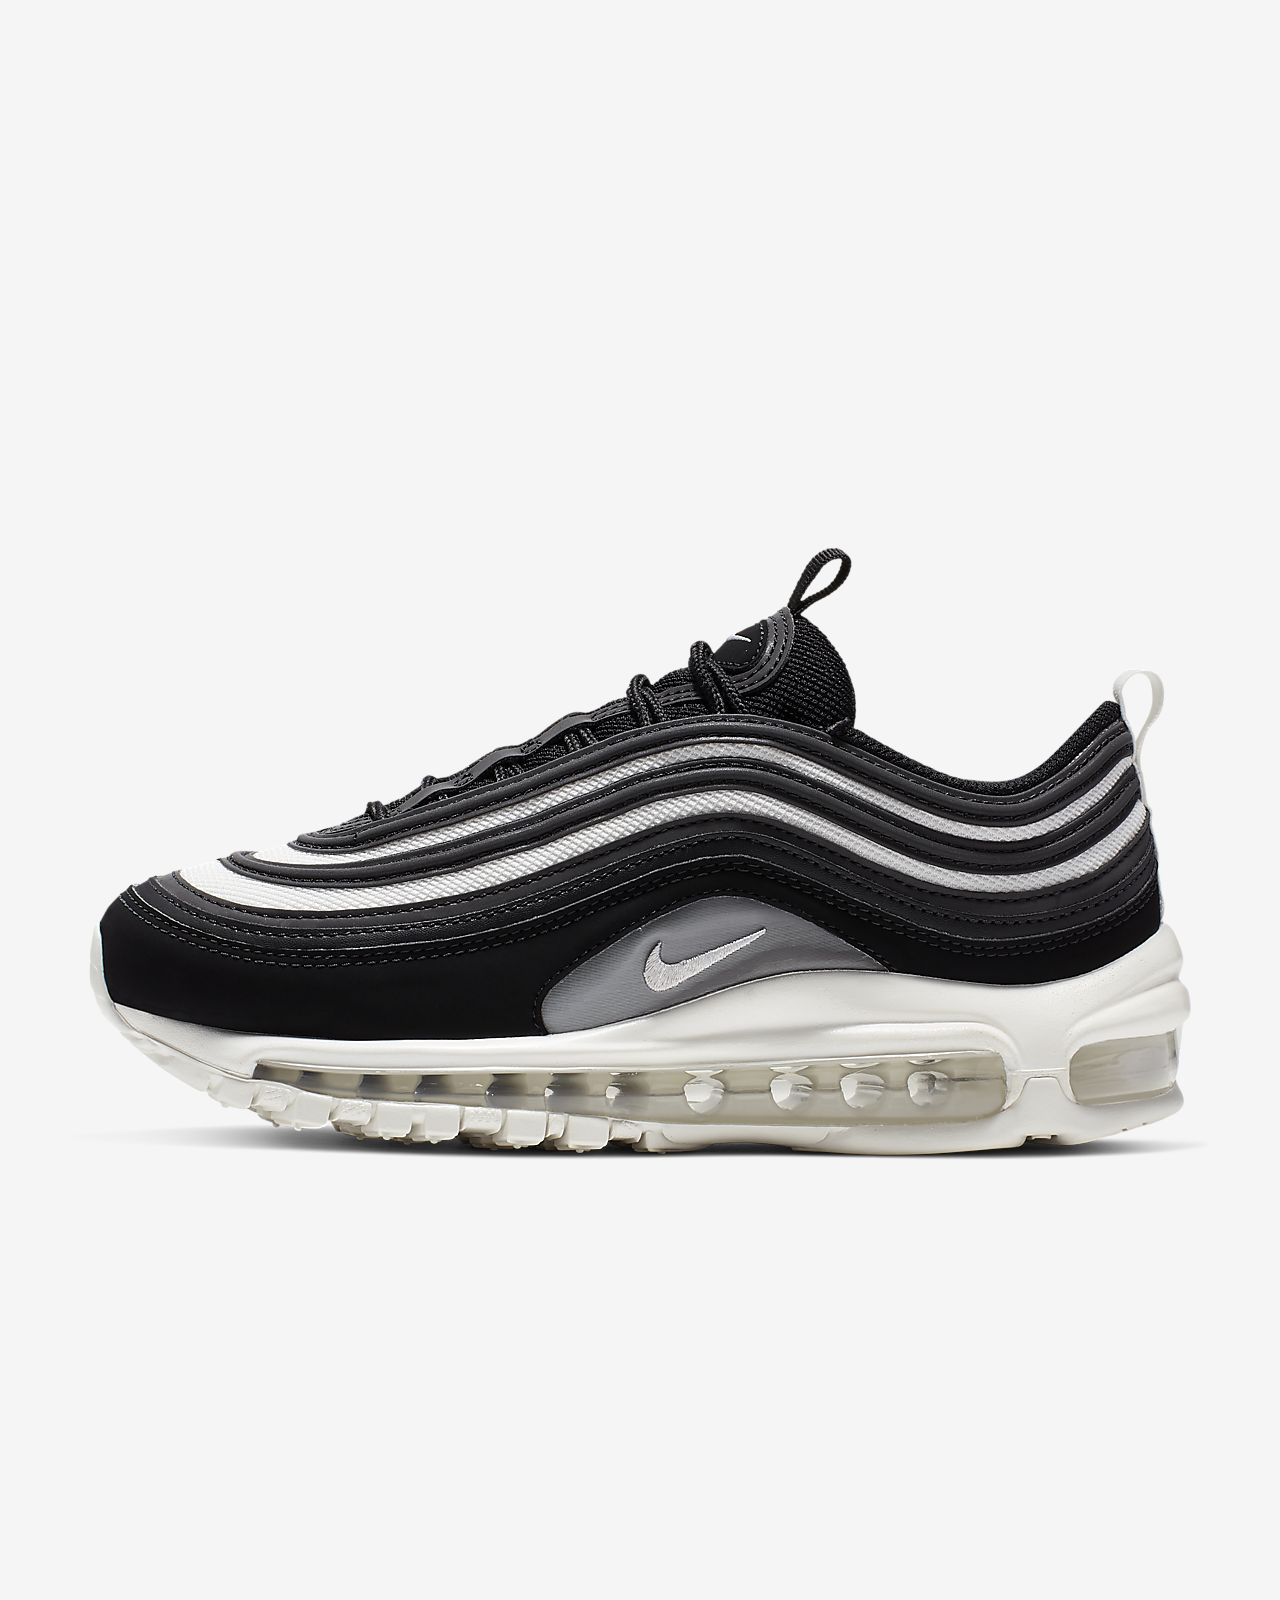 size 40 14adc f5f2f ... Chaussure Nike Air Max 97 pour Femme